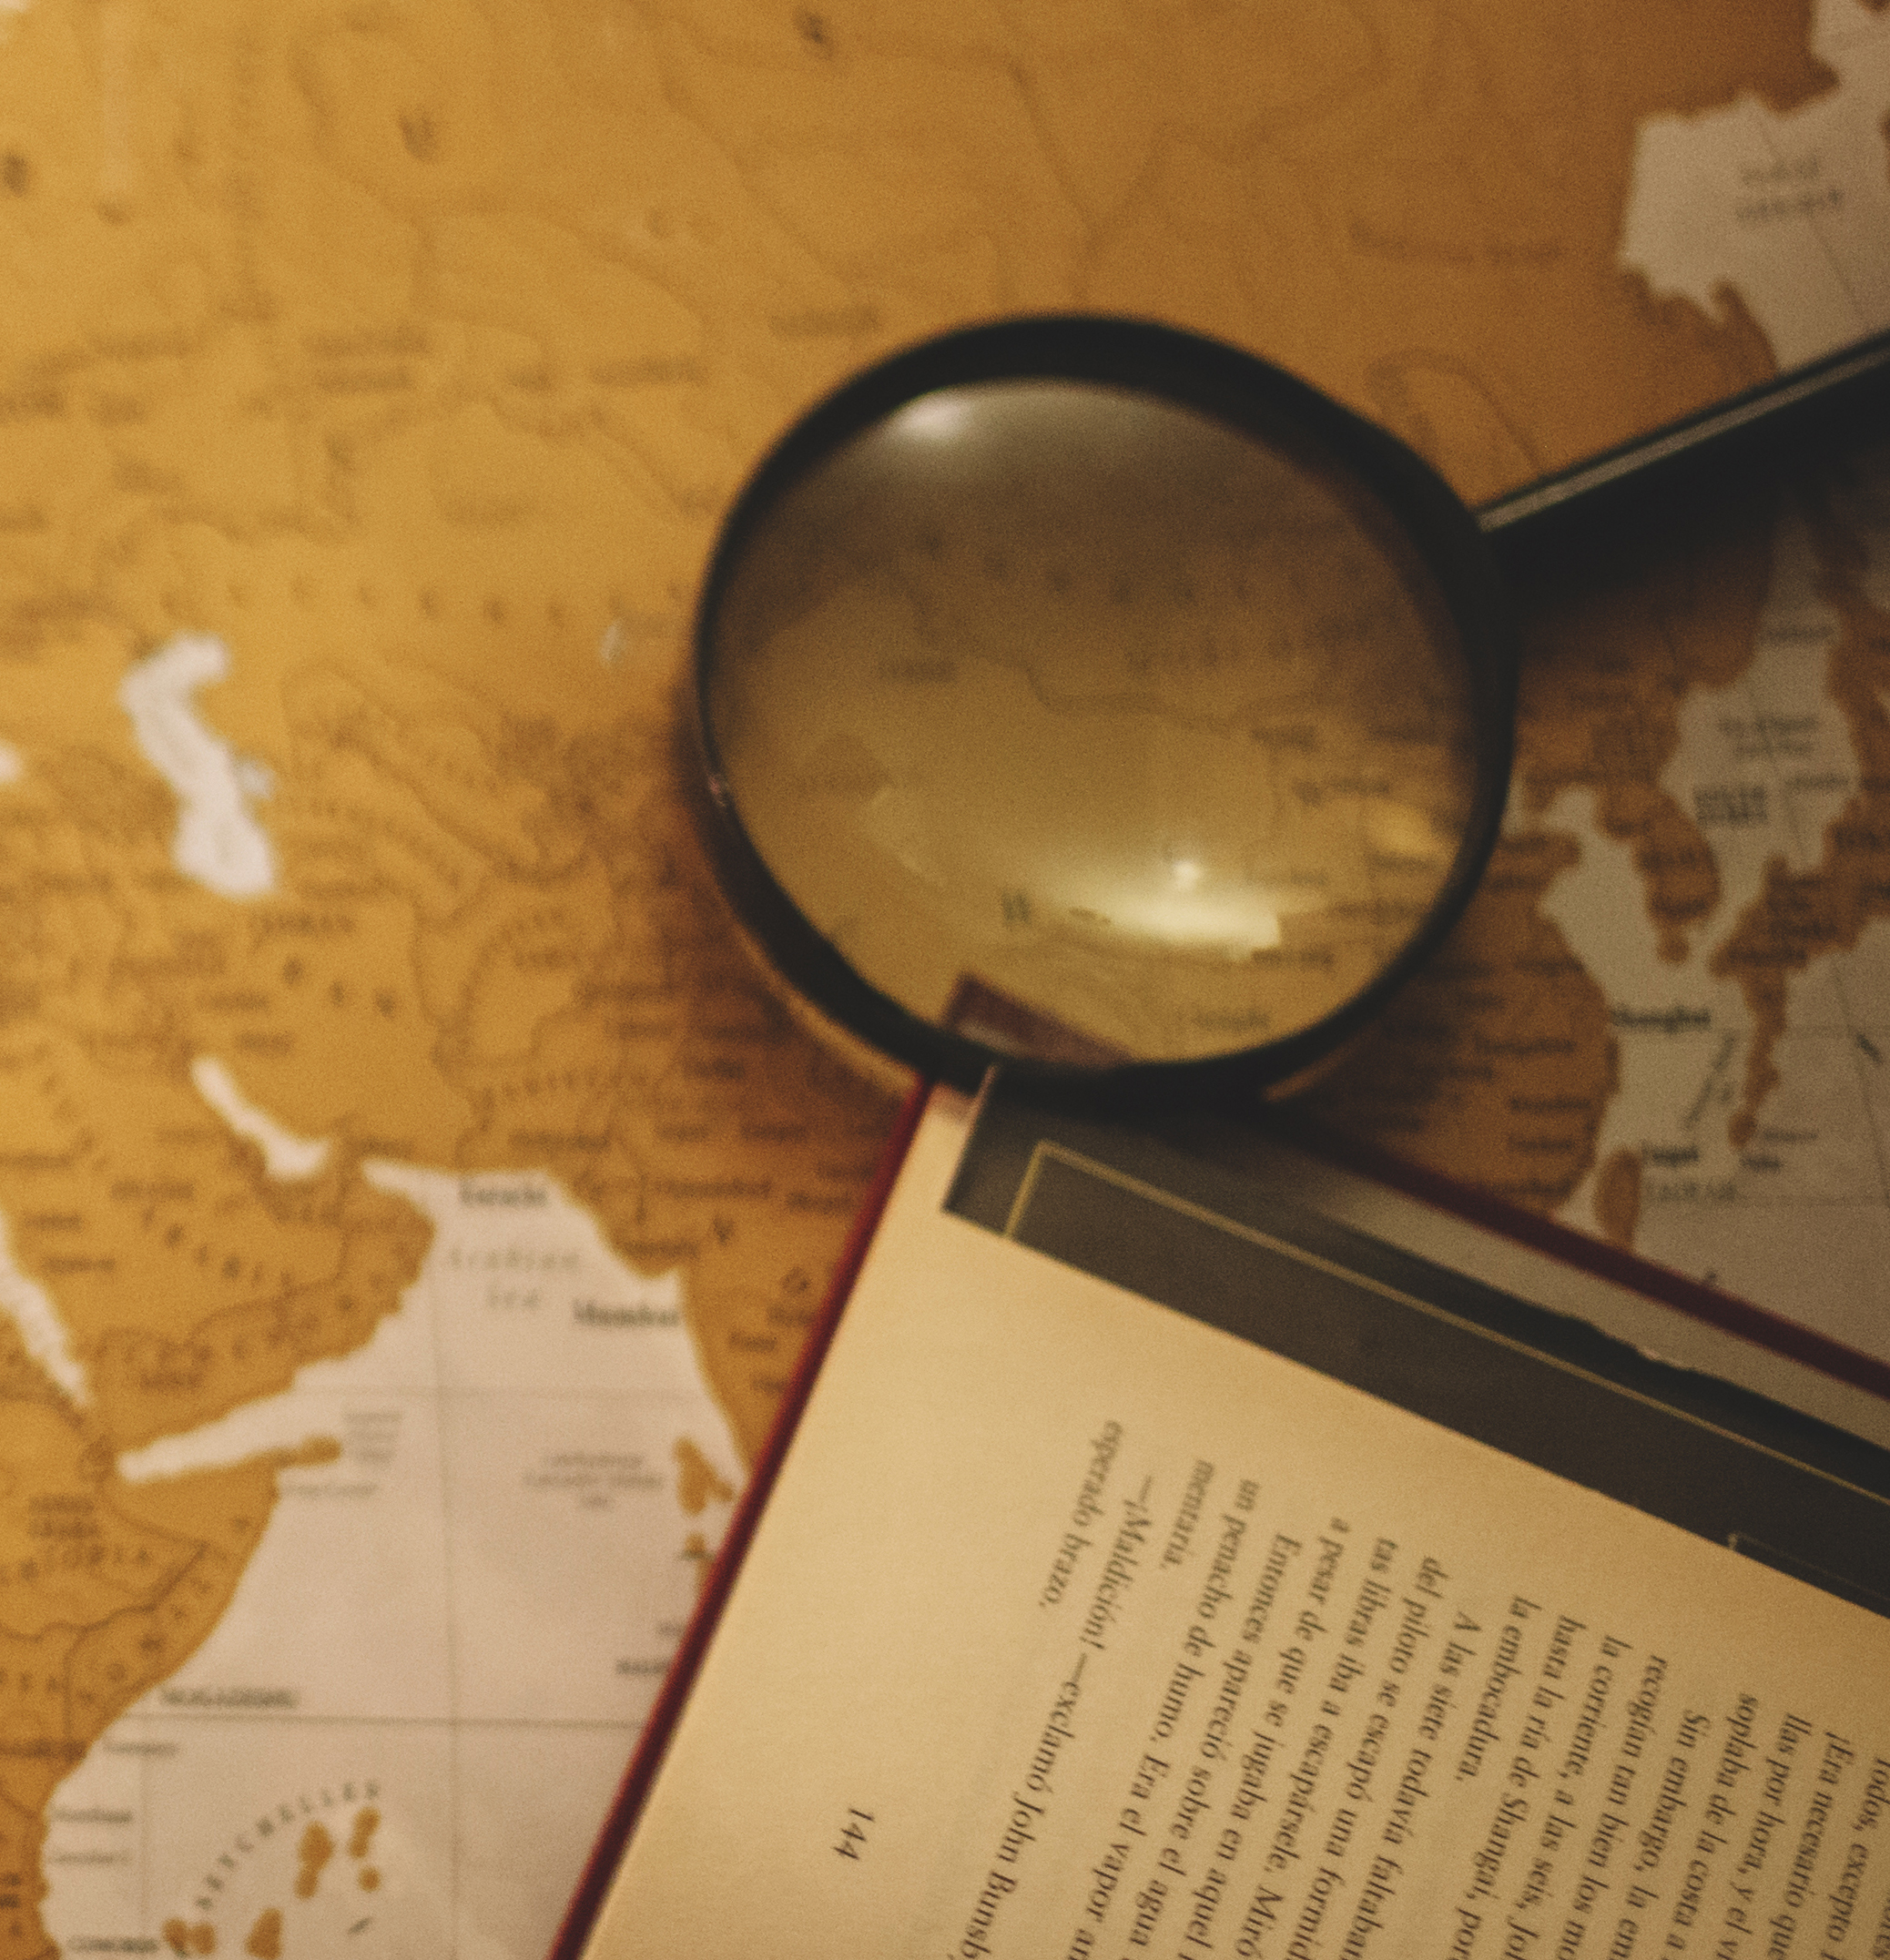 Image of a map with an open book and a magnifying glass